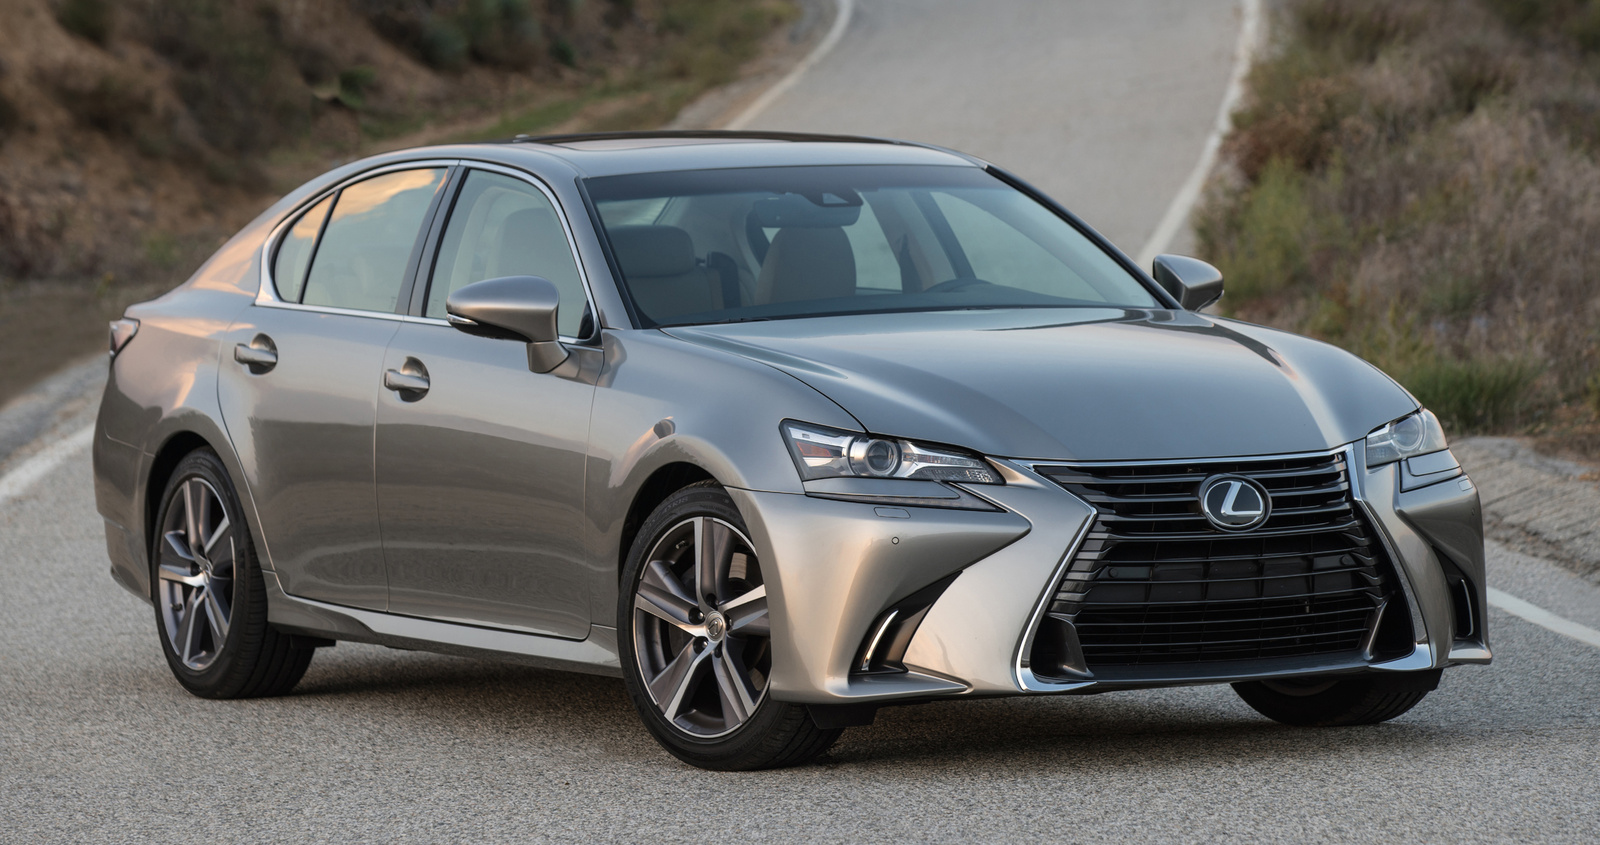 2016 Lexus GS 200t - Review - CarGurus